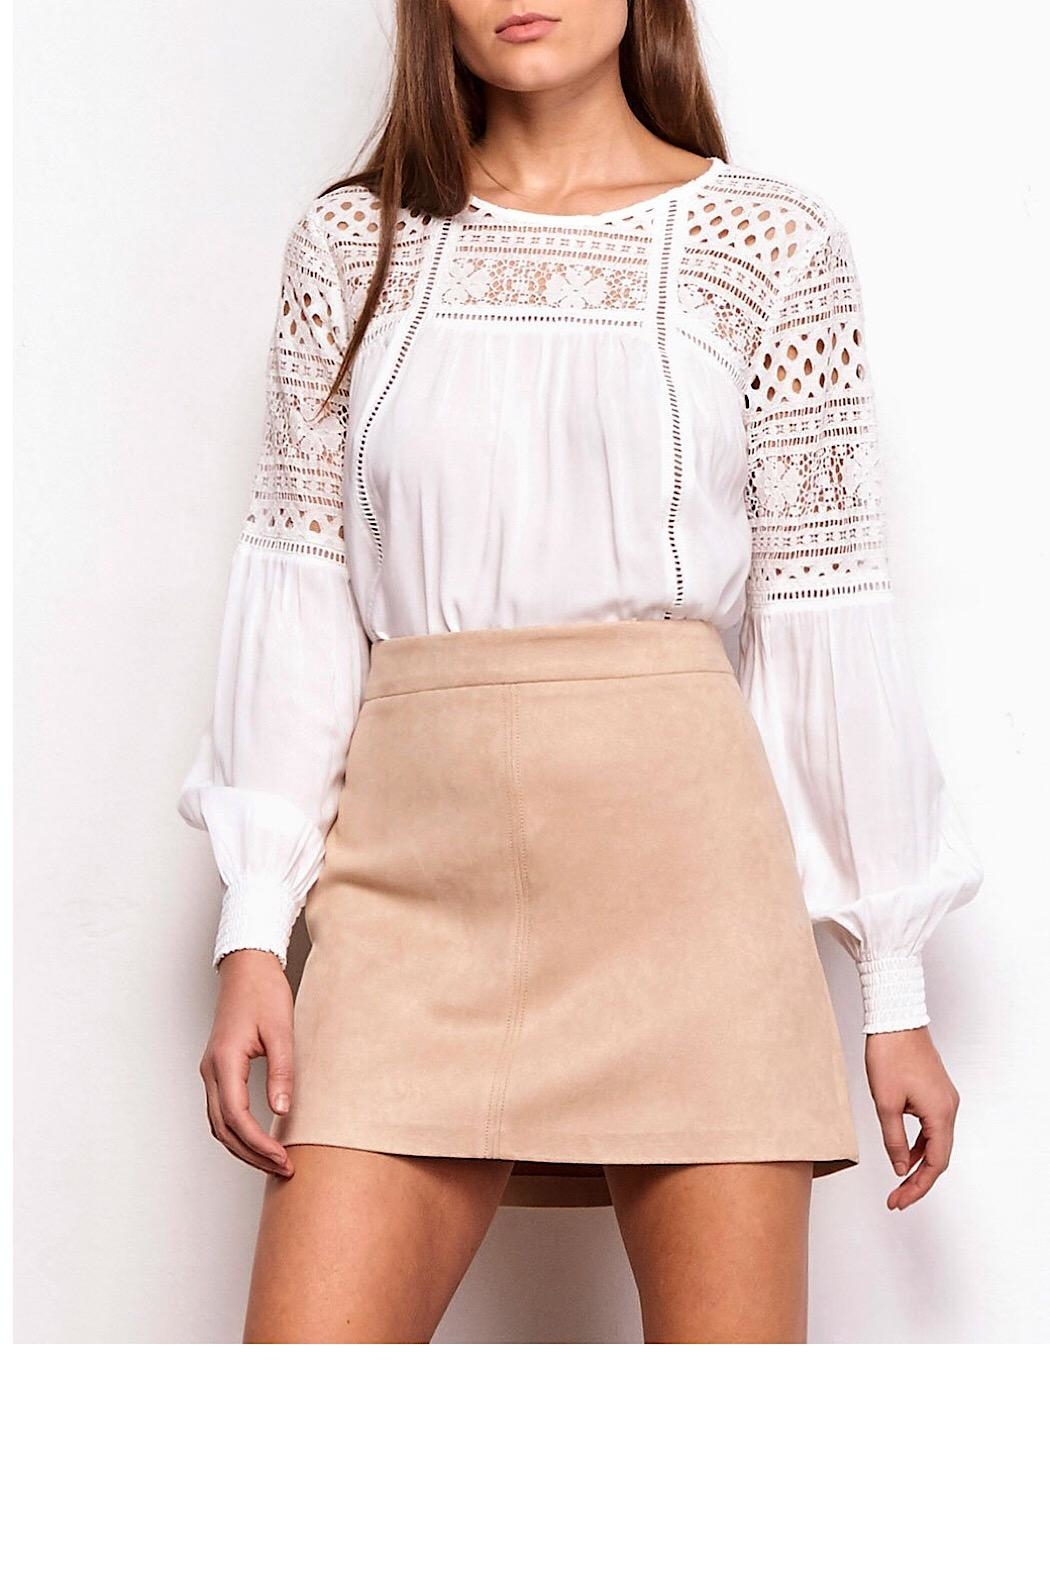 Jack by BB Dakota A-Line Faux-Suede Skirt - Main Image